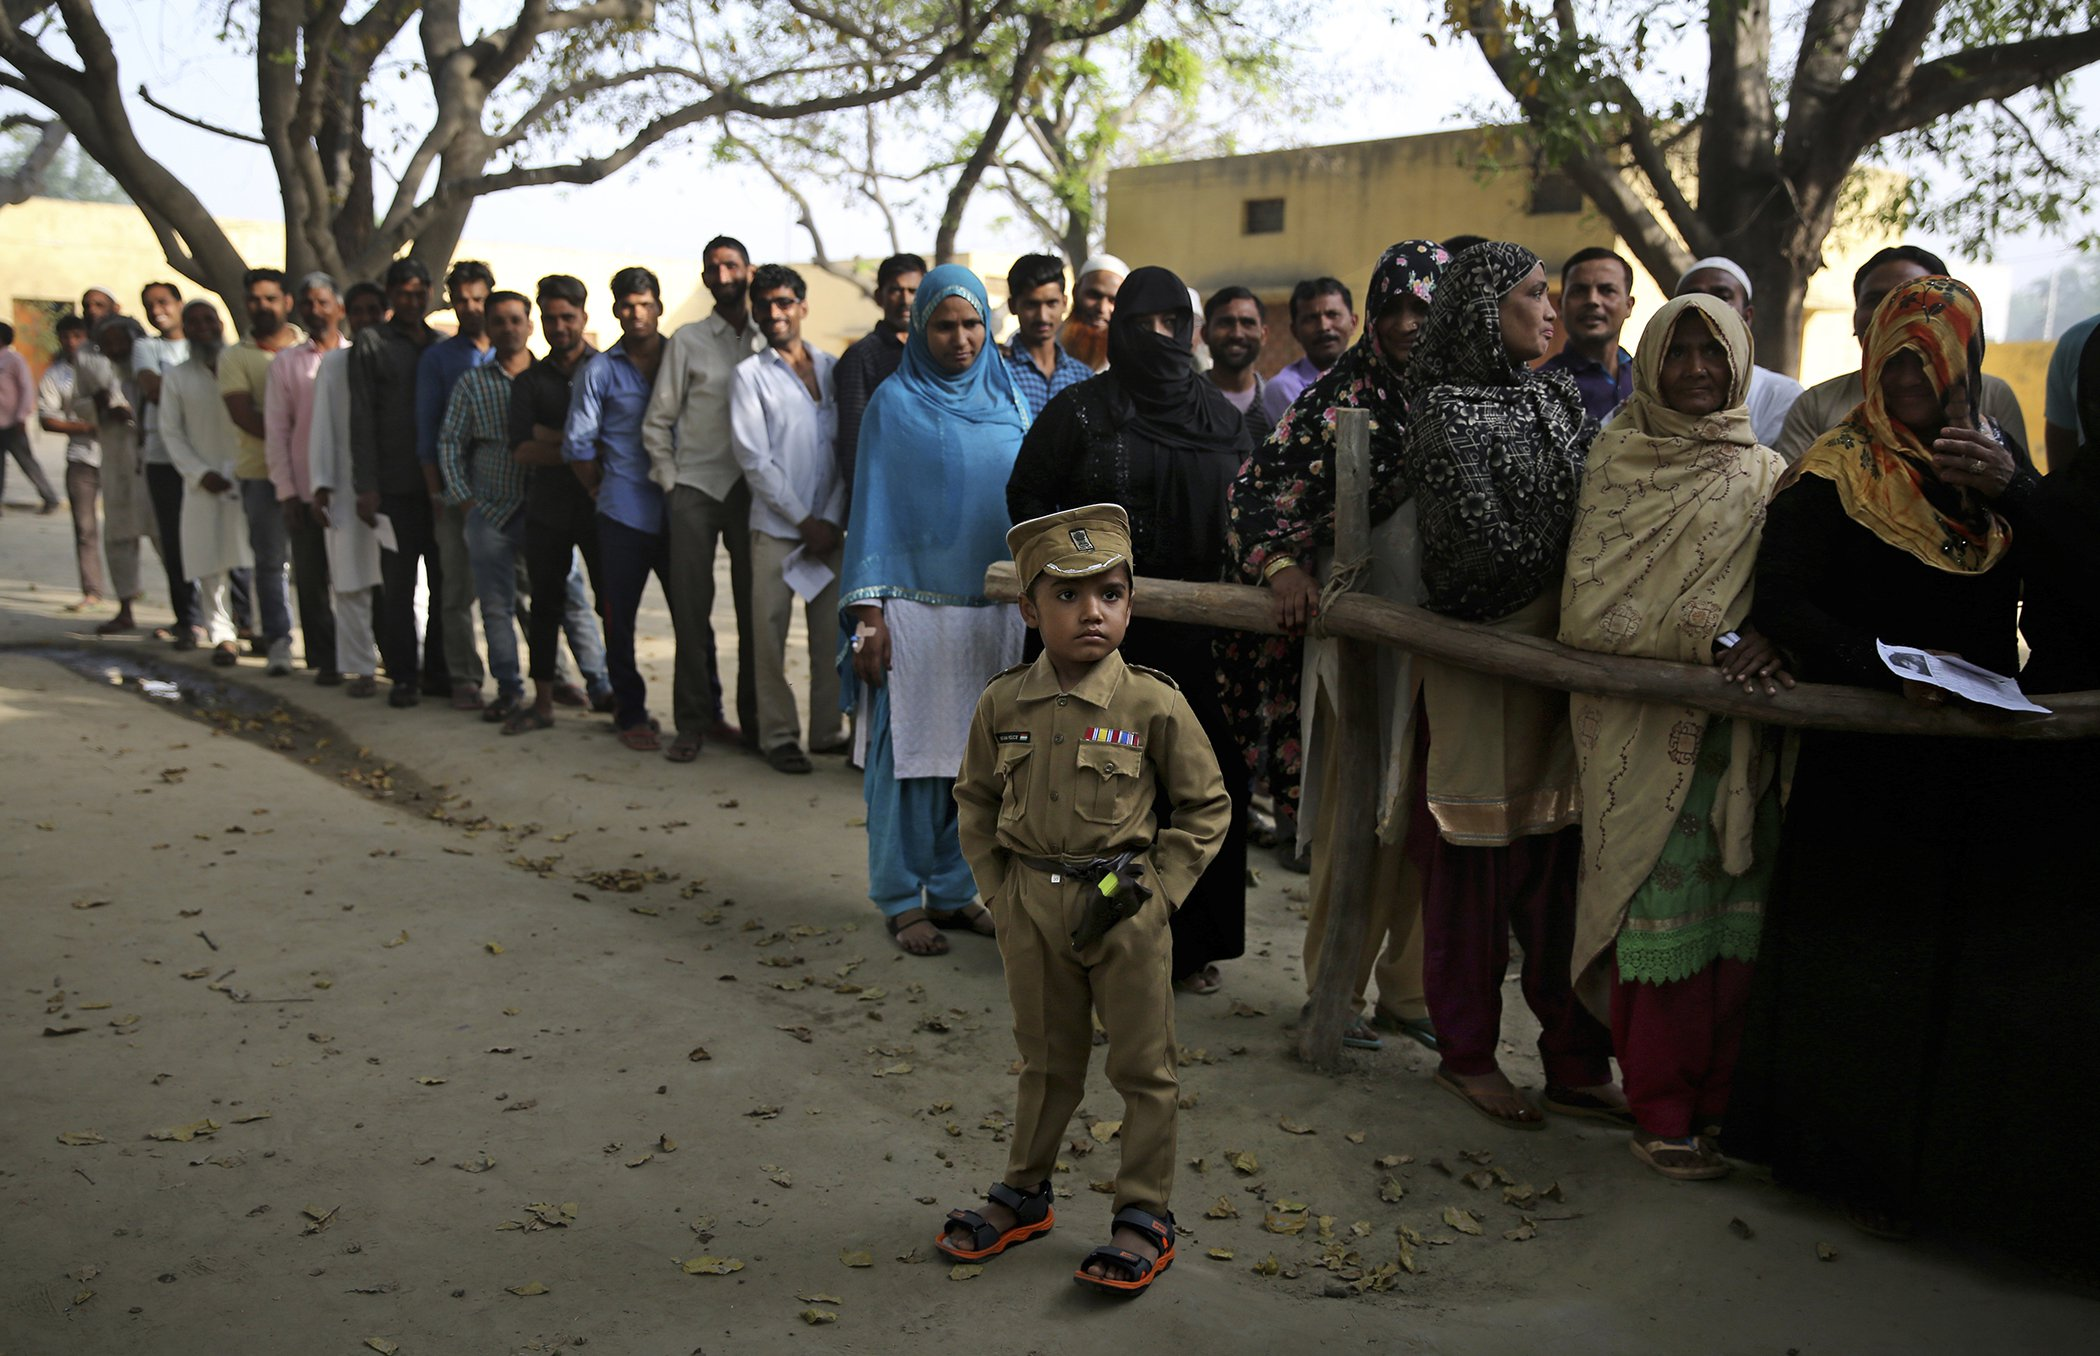 India-Elections-Democracy-Voting-Lines.jpg